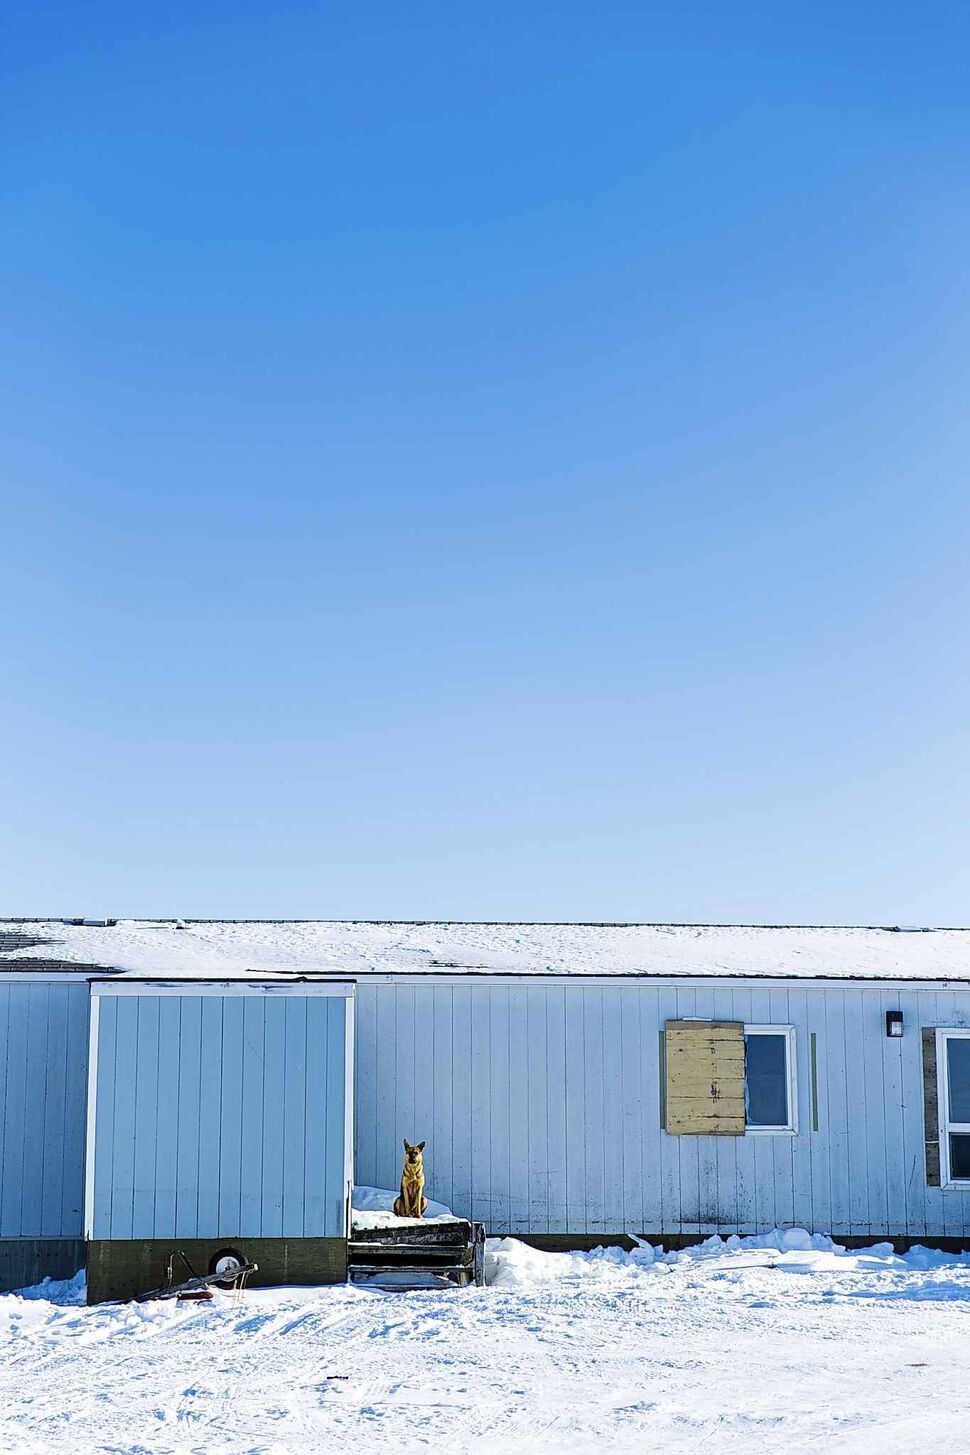 MIKAELA MACKENZIE / WINNIPEG FREE PRESS</p><p>February 23 — A dog stands sentry on the Chemawawin Reserve, Manitoba.</p>